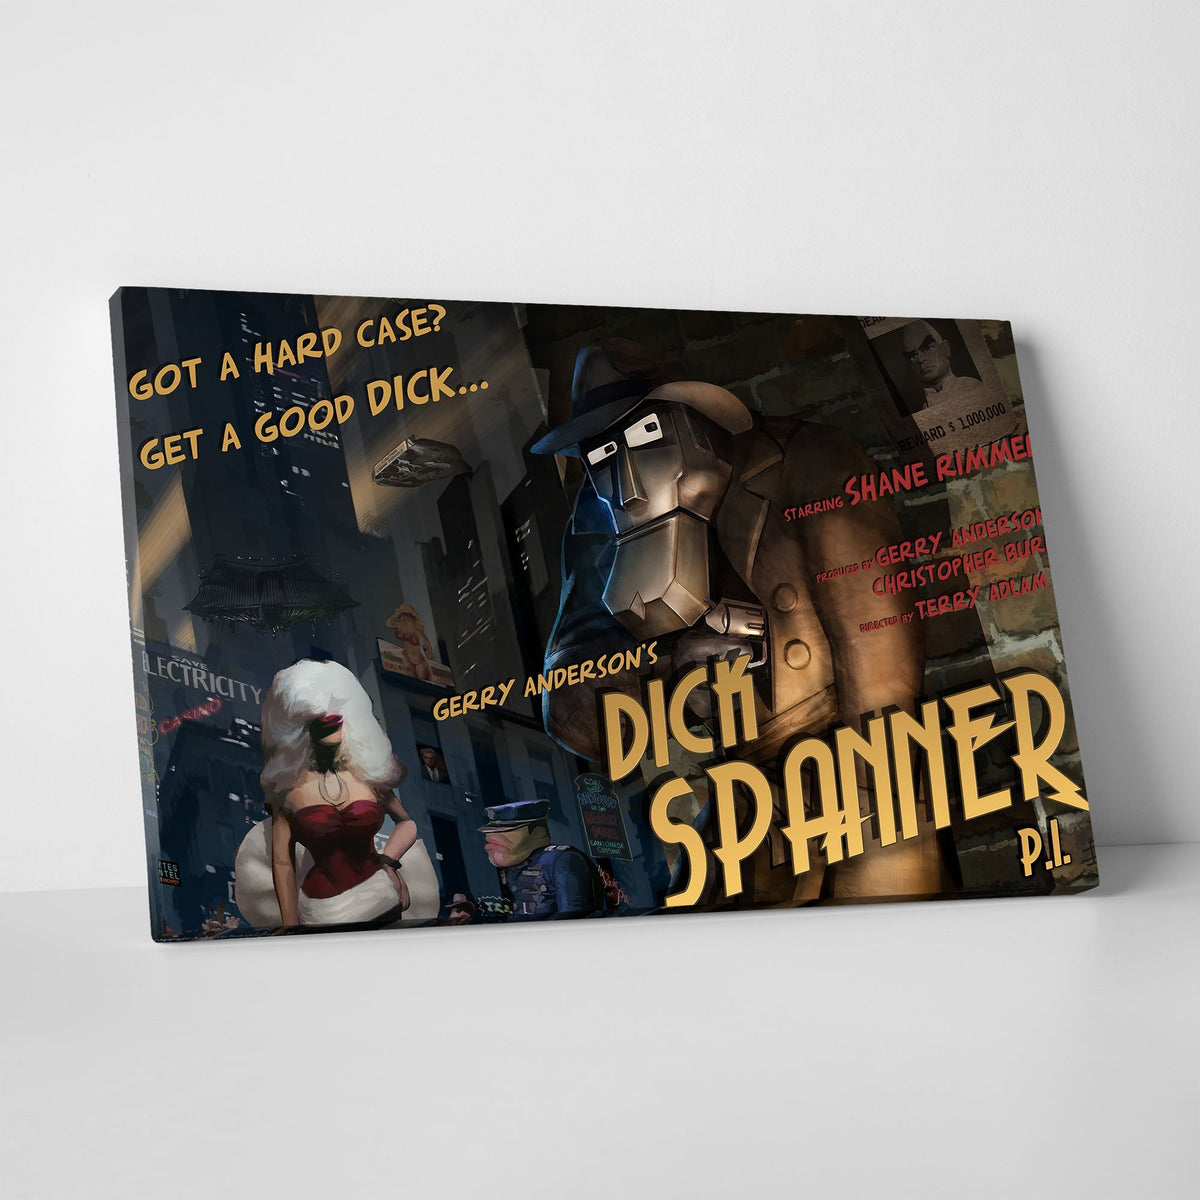 Dick Spanner Canvas Print [Official and Exclusive] - The Gerry Anderson Store